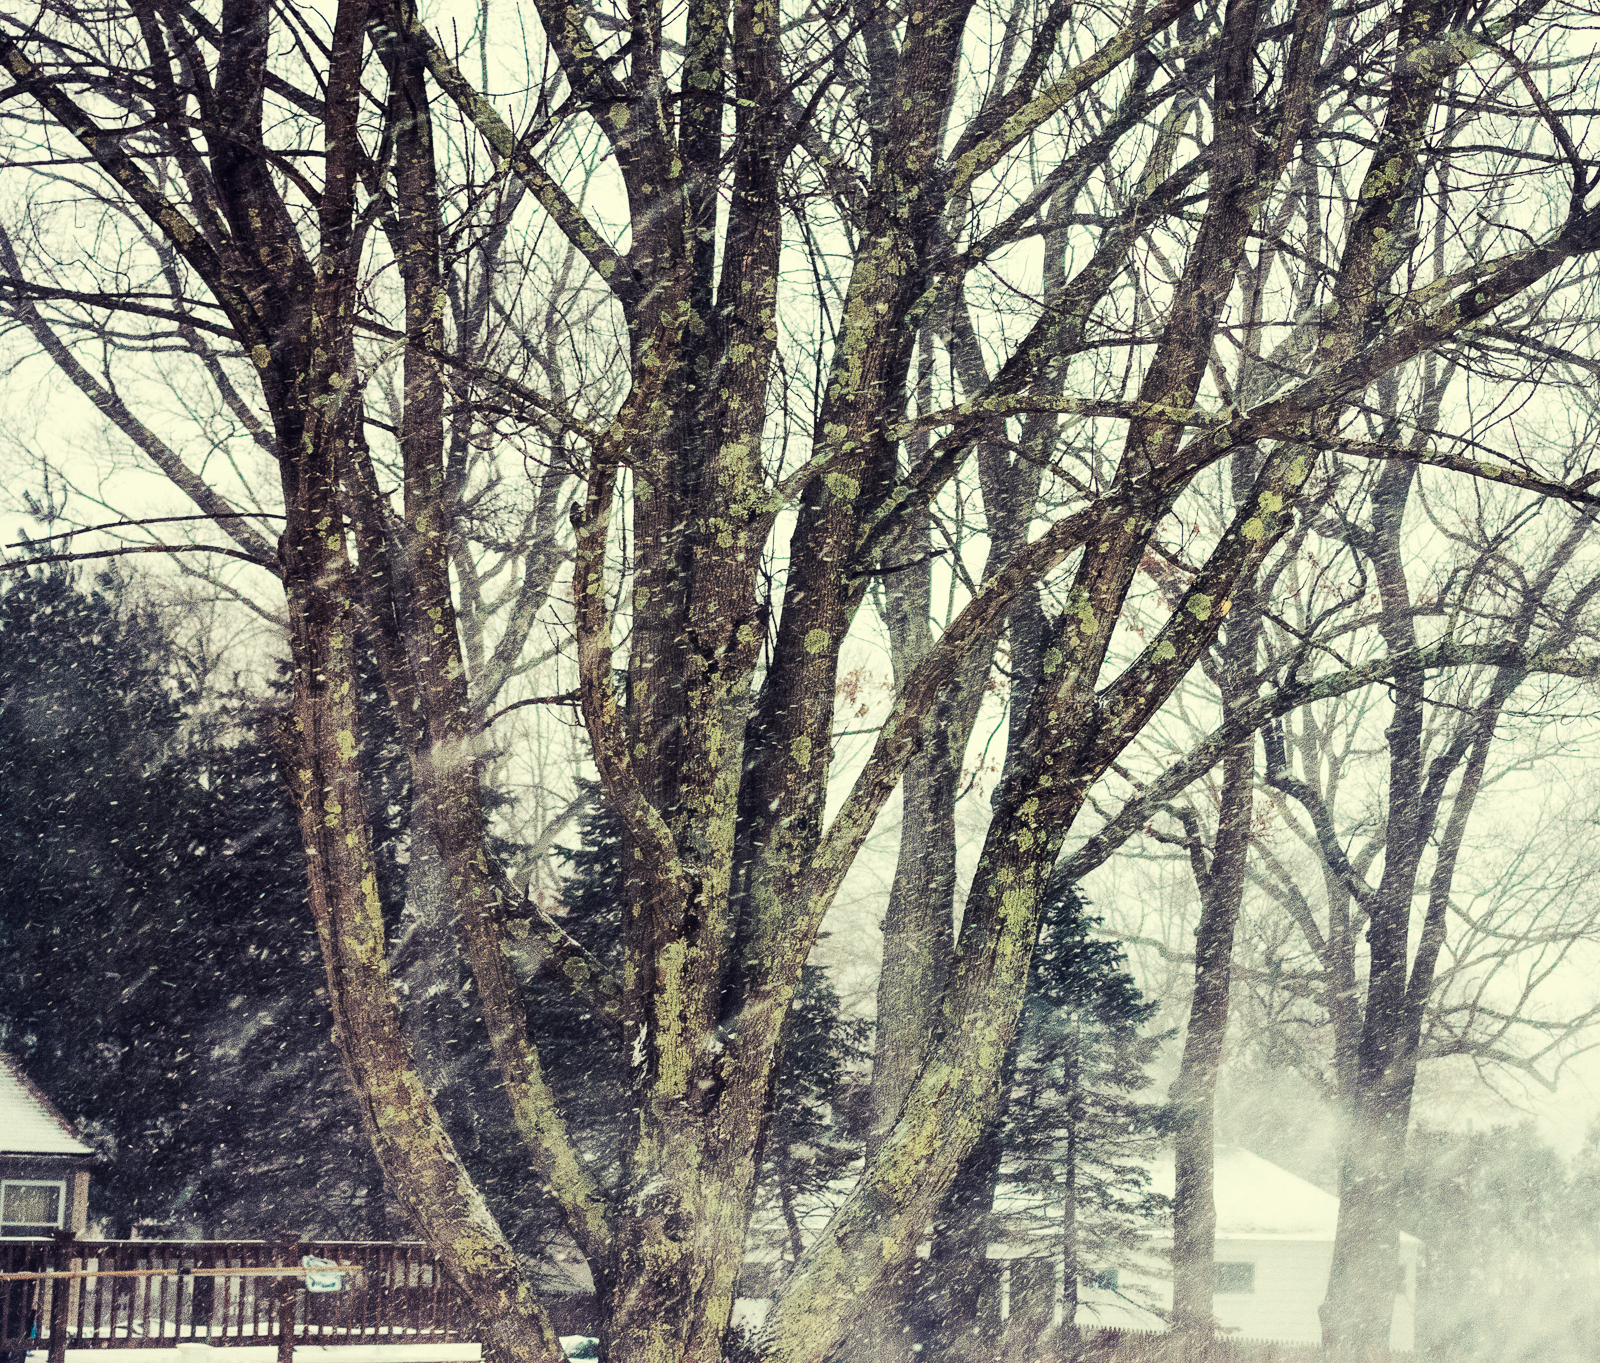 Snow falling against tree backdrop, cross-processed